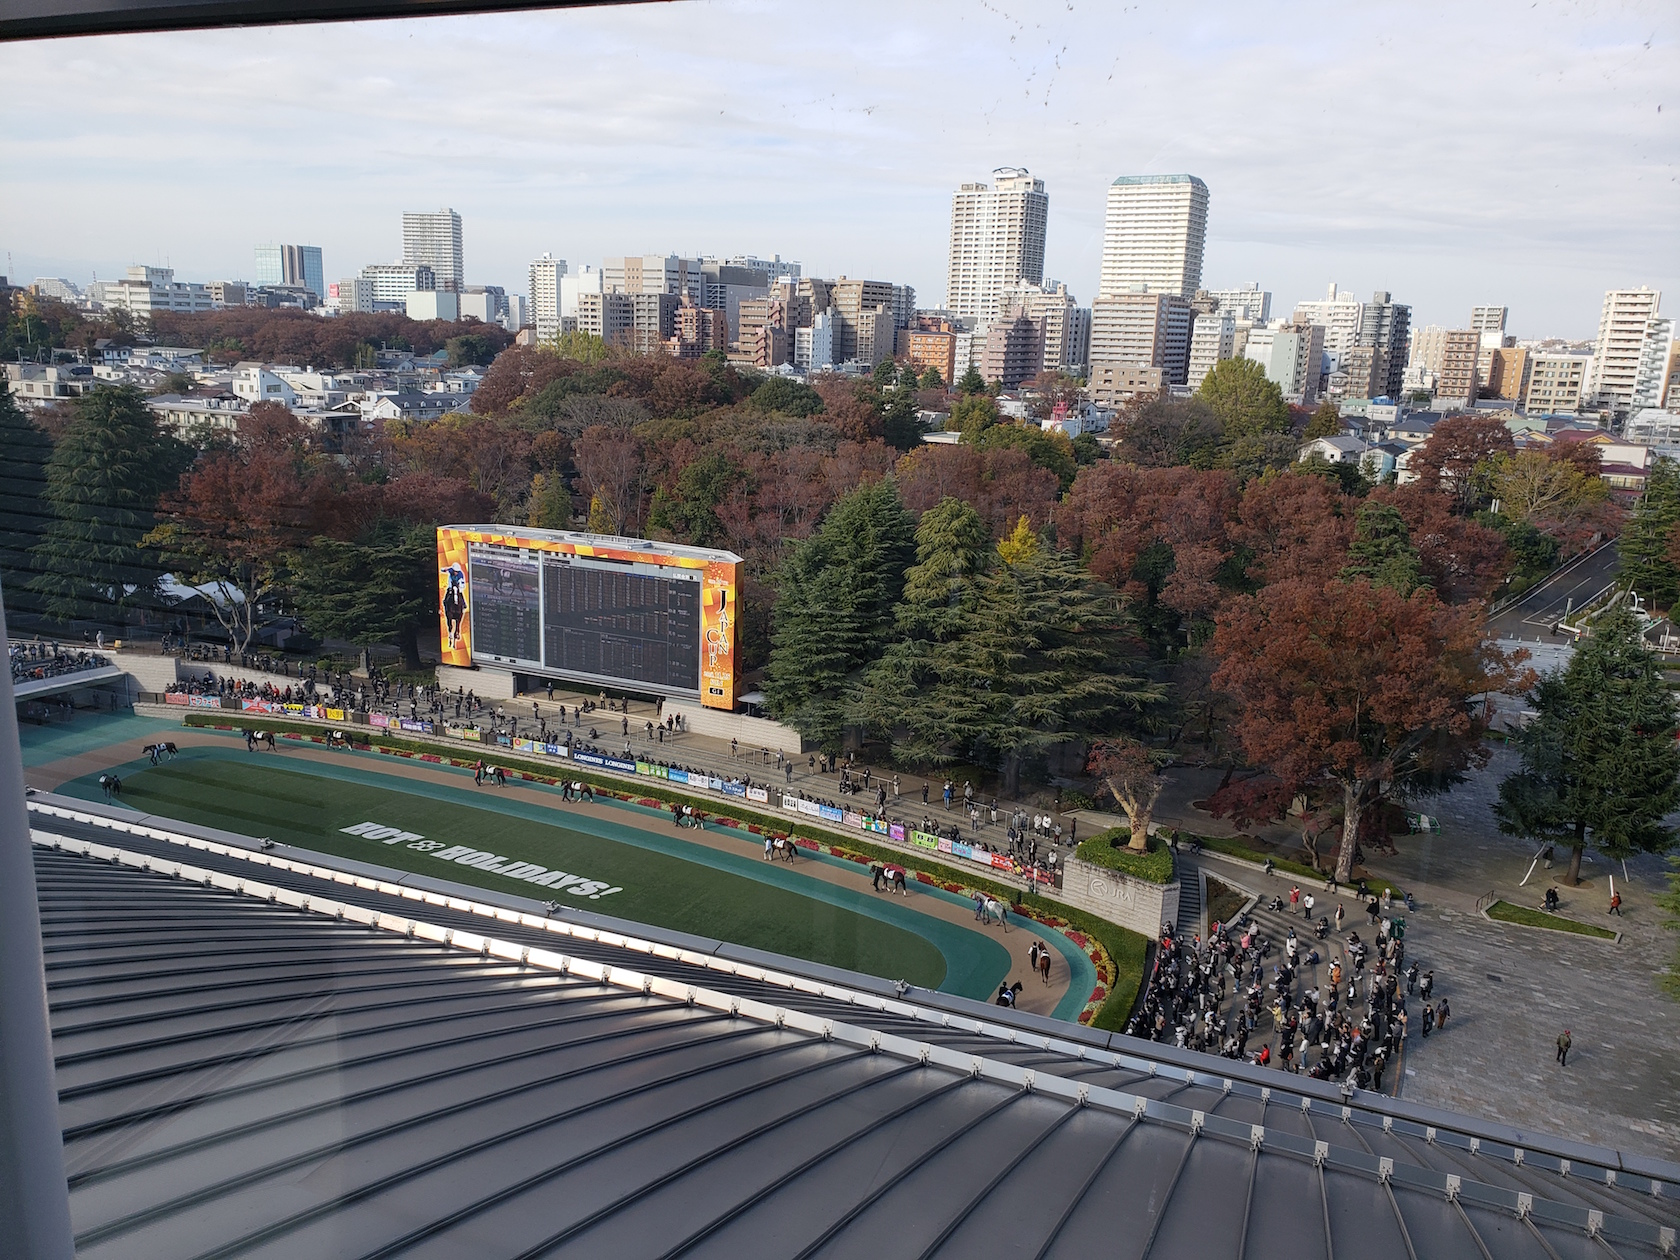 A view of the Tokyo paddock and it's giant tote board. Photo: Bob Ehalt